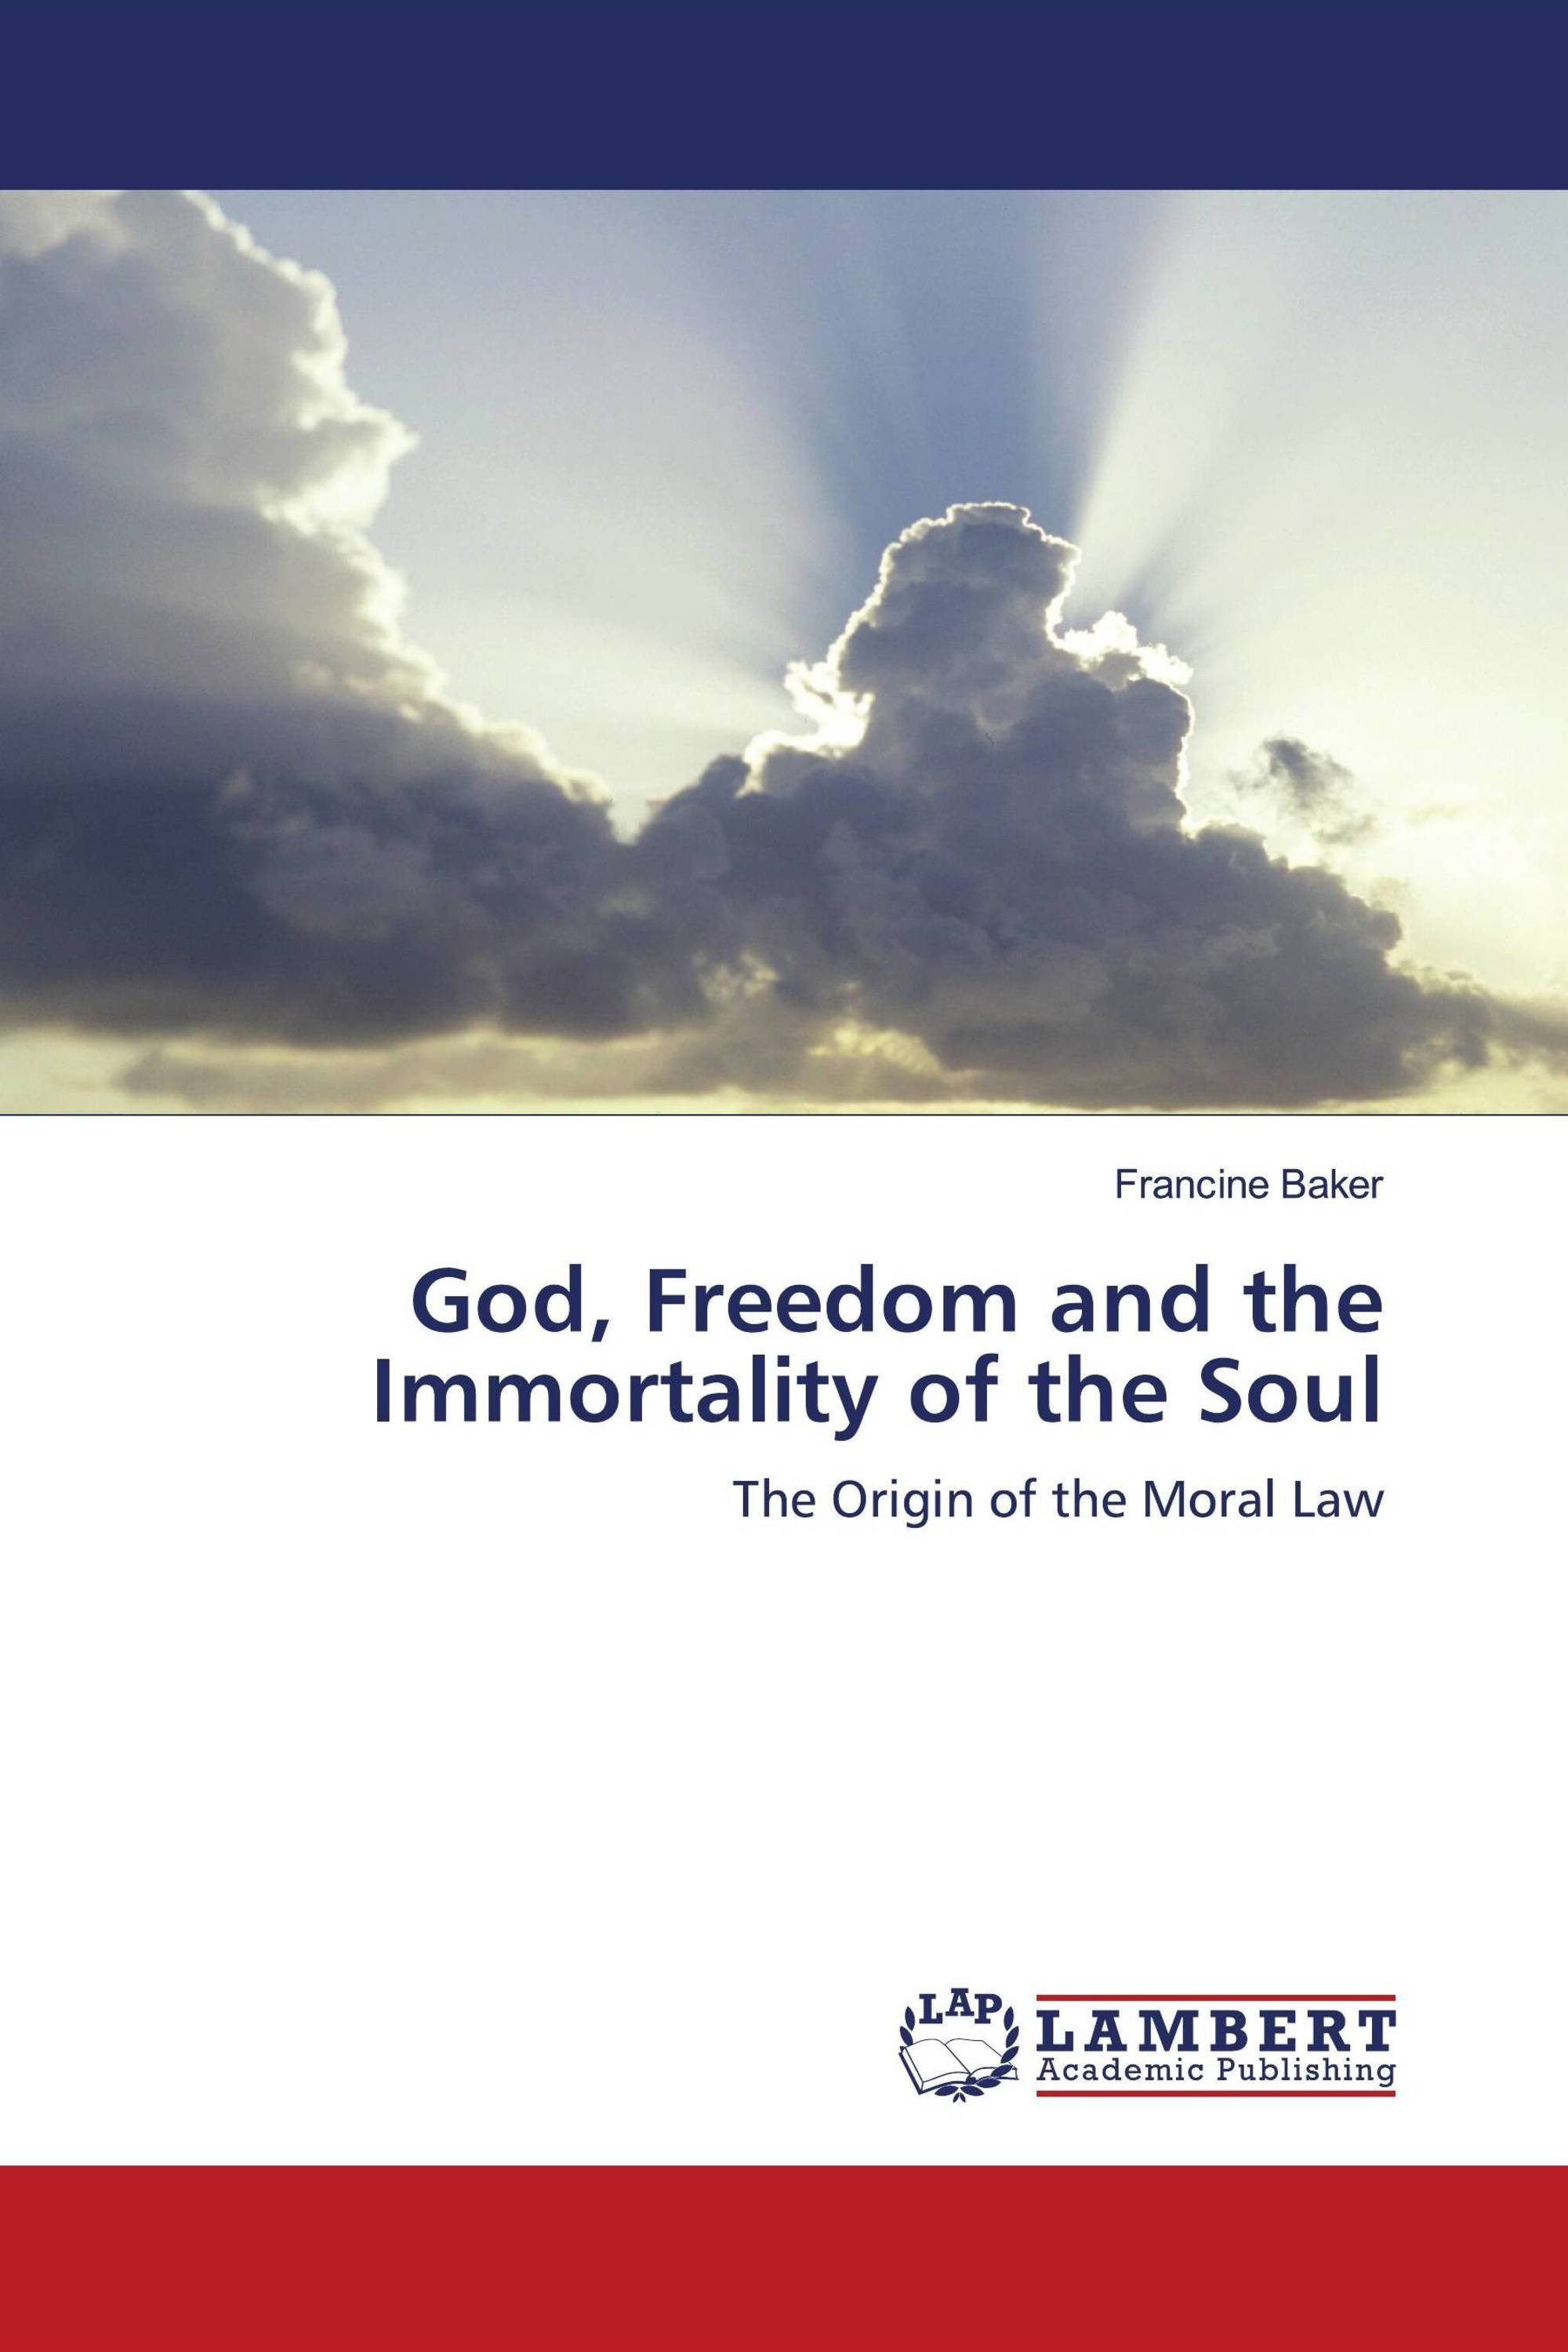 God, Freedom and the Immortality of the Soul